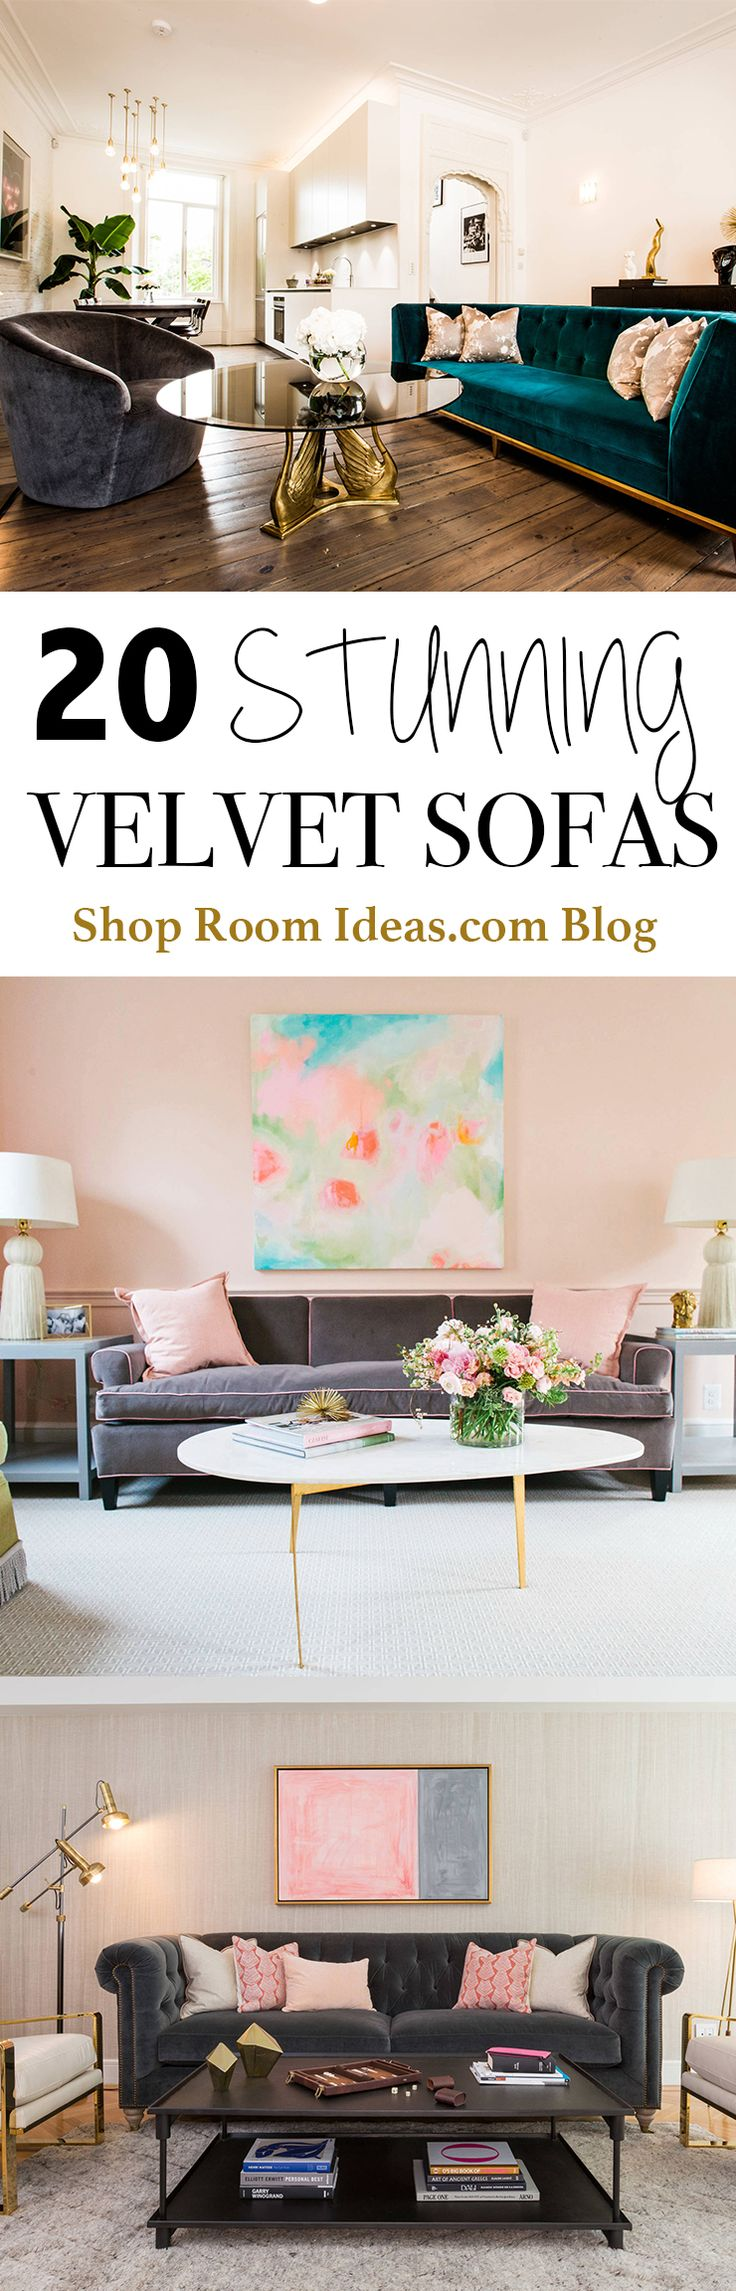 Which type of Velvet sofa should you buy for your home? From tuxedo to chesterfield sofas, they come in emerald, pink, blue, grey, and more! #mid #century #design #loft #apartment #ideas #inspiration #pink #walls #gray #living #room #design #mid #century #traditional